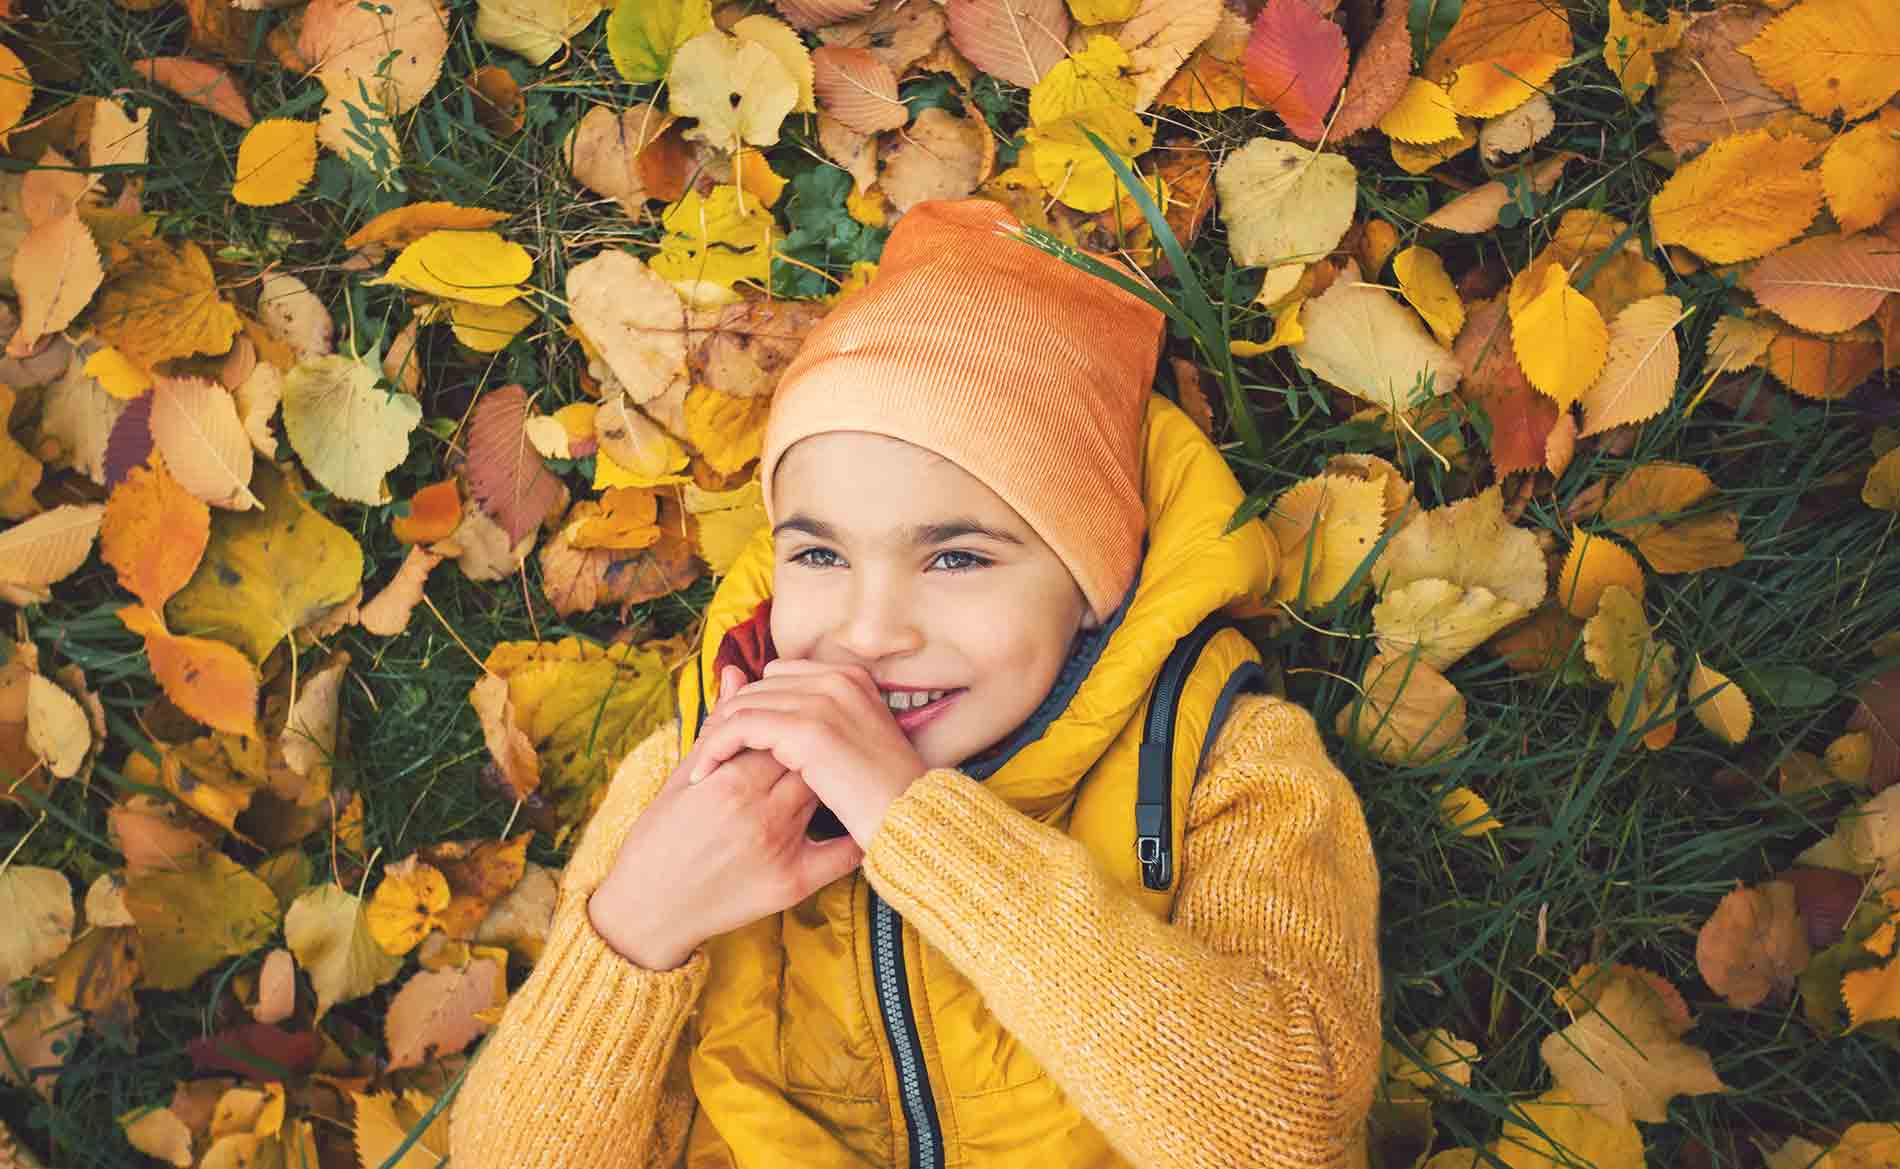 Boy with Cerebral Palsy Playing in Leaves